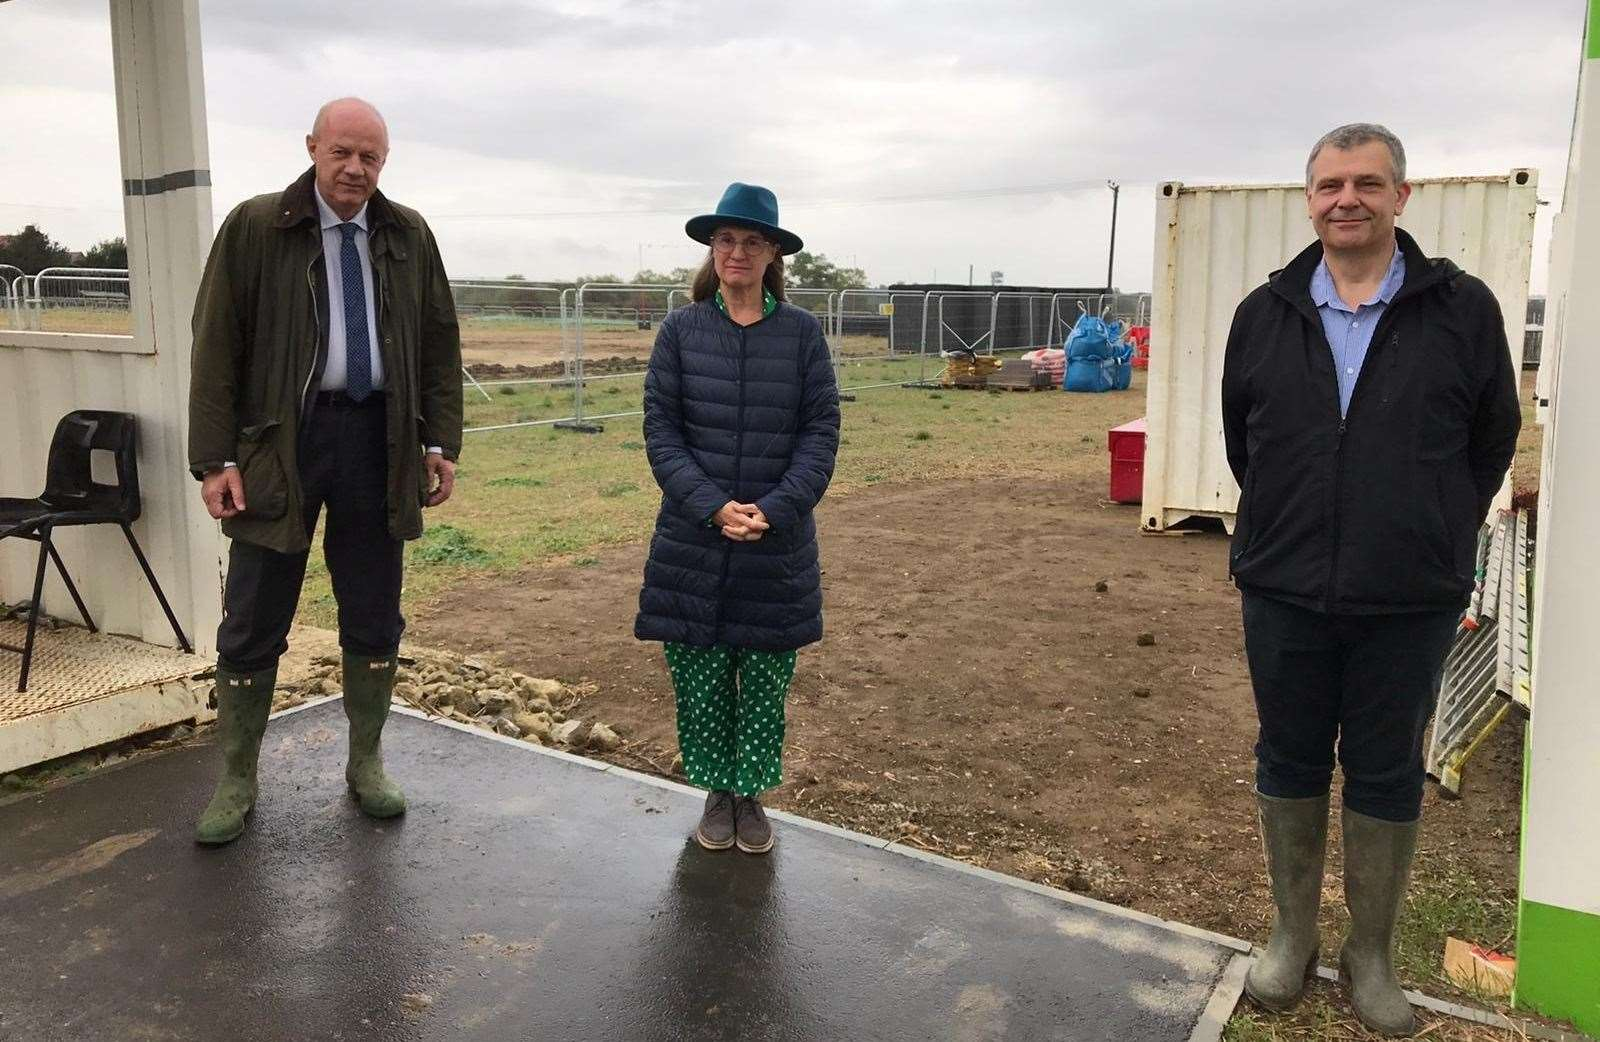 Ashford MP Damian Green, Rachel Maclean and Cllr Paul Bartlett on the MOJO site yesterday